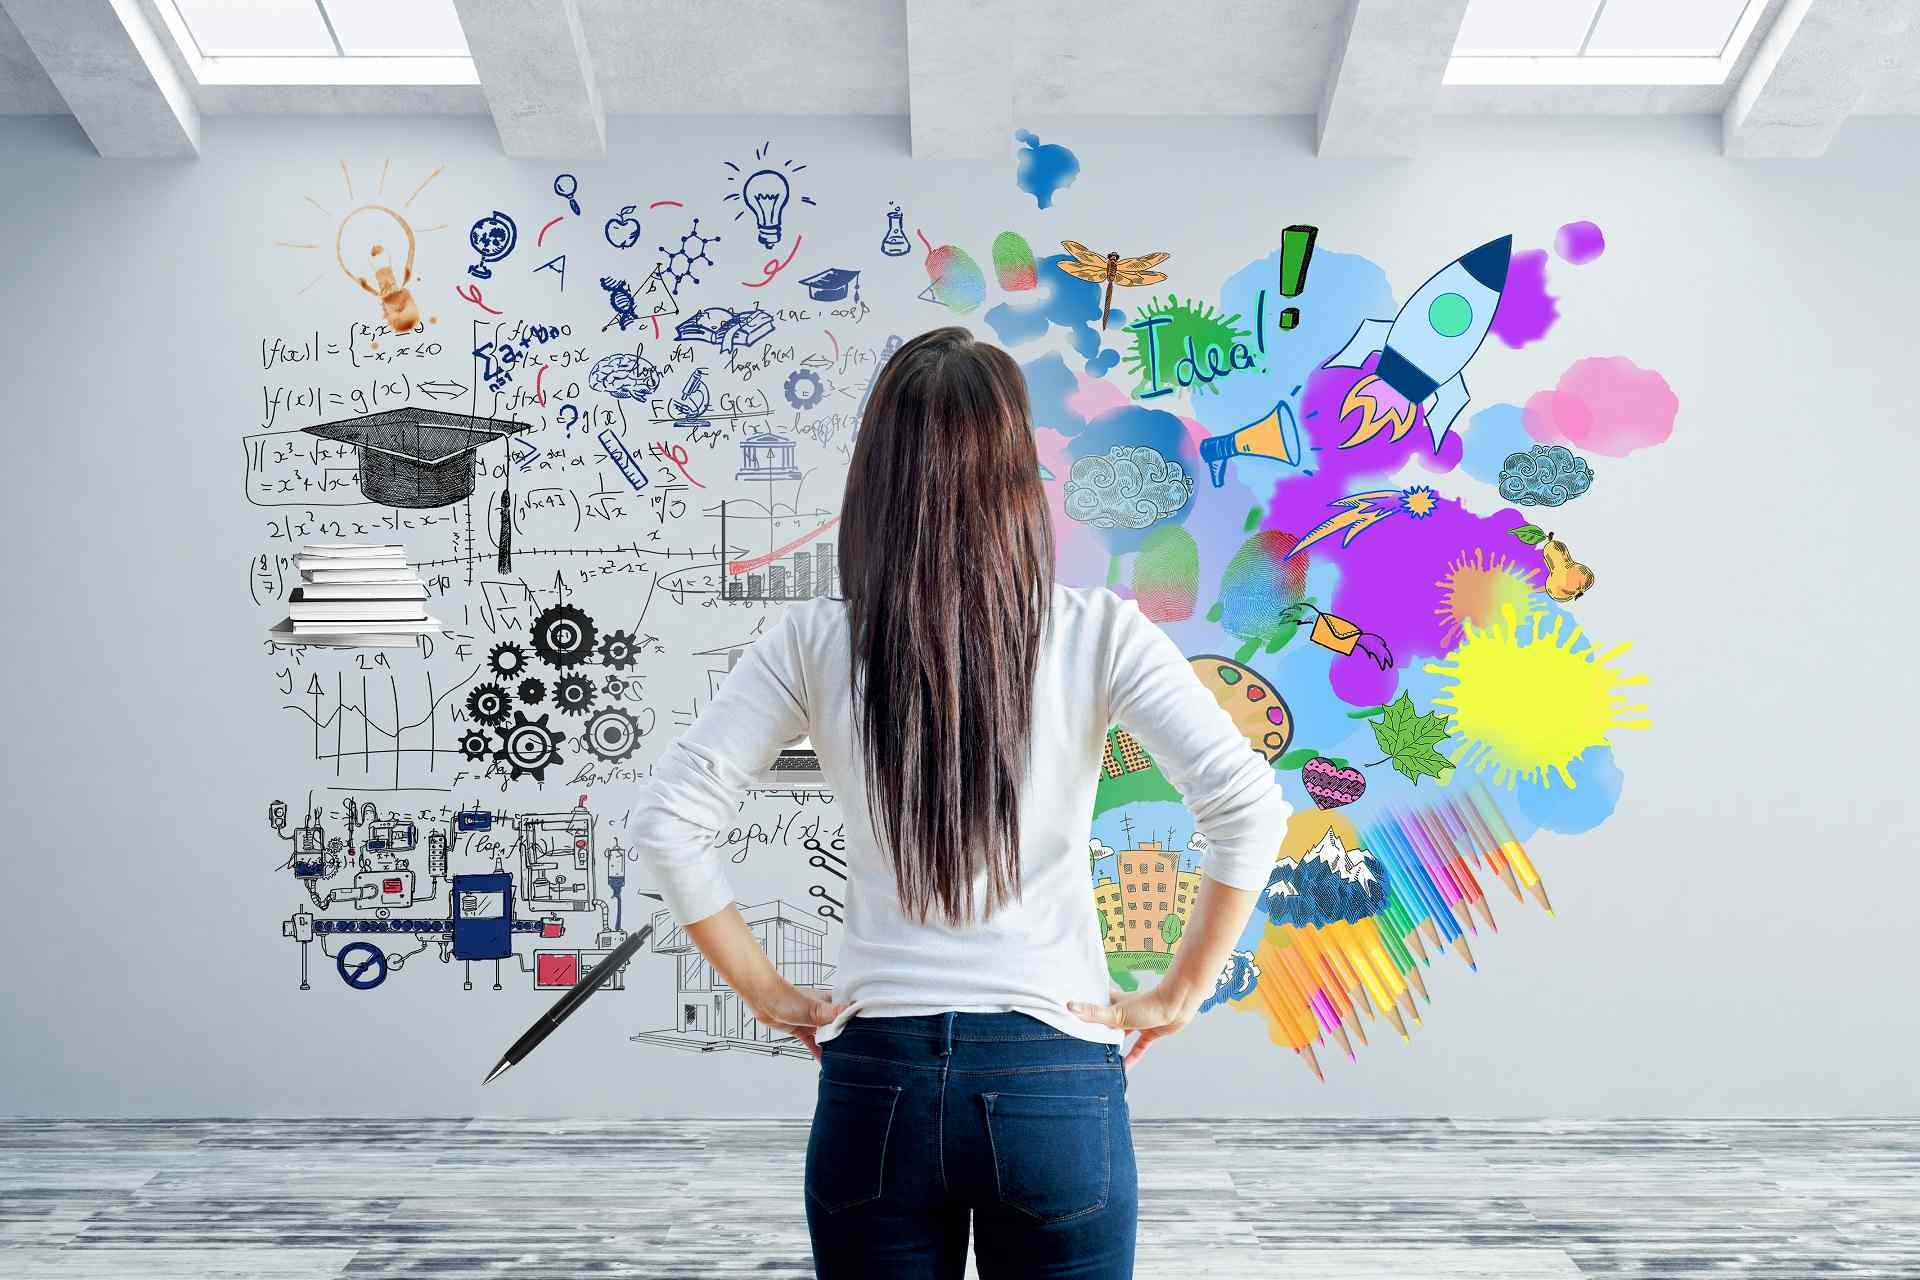 What is the next big thing in marketing in 2021 and beyond?